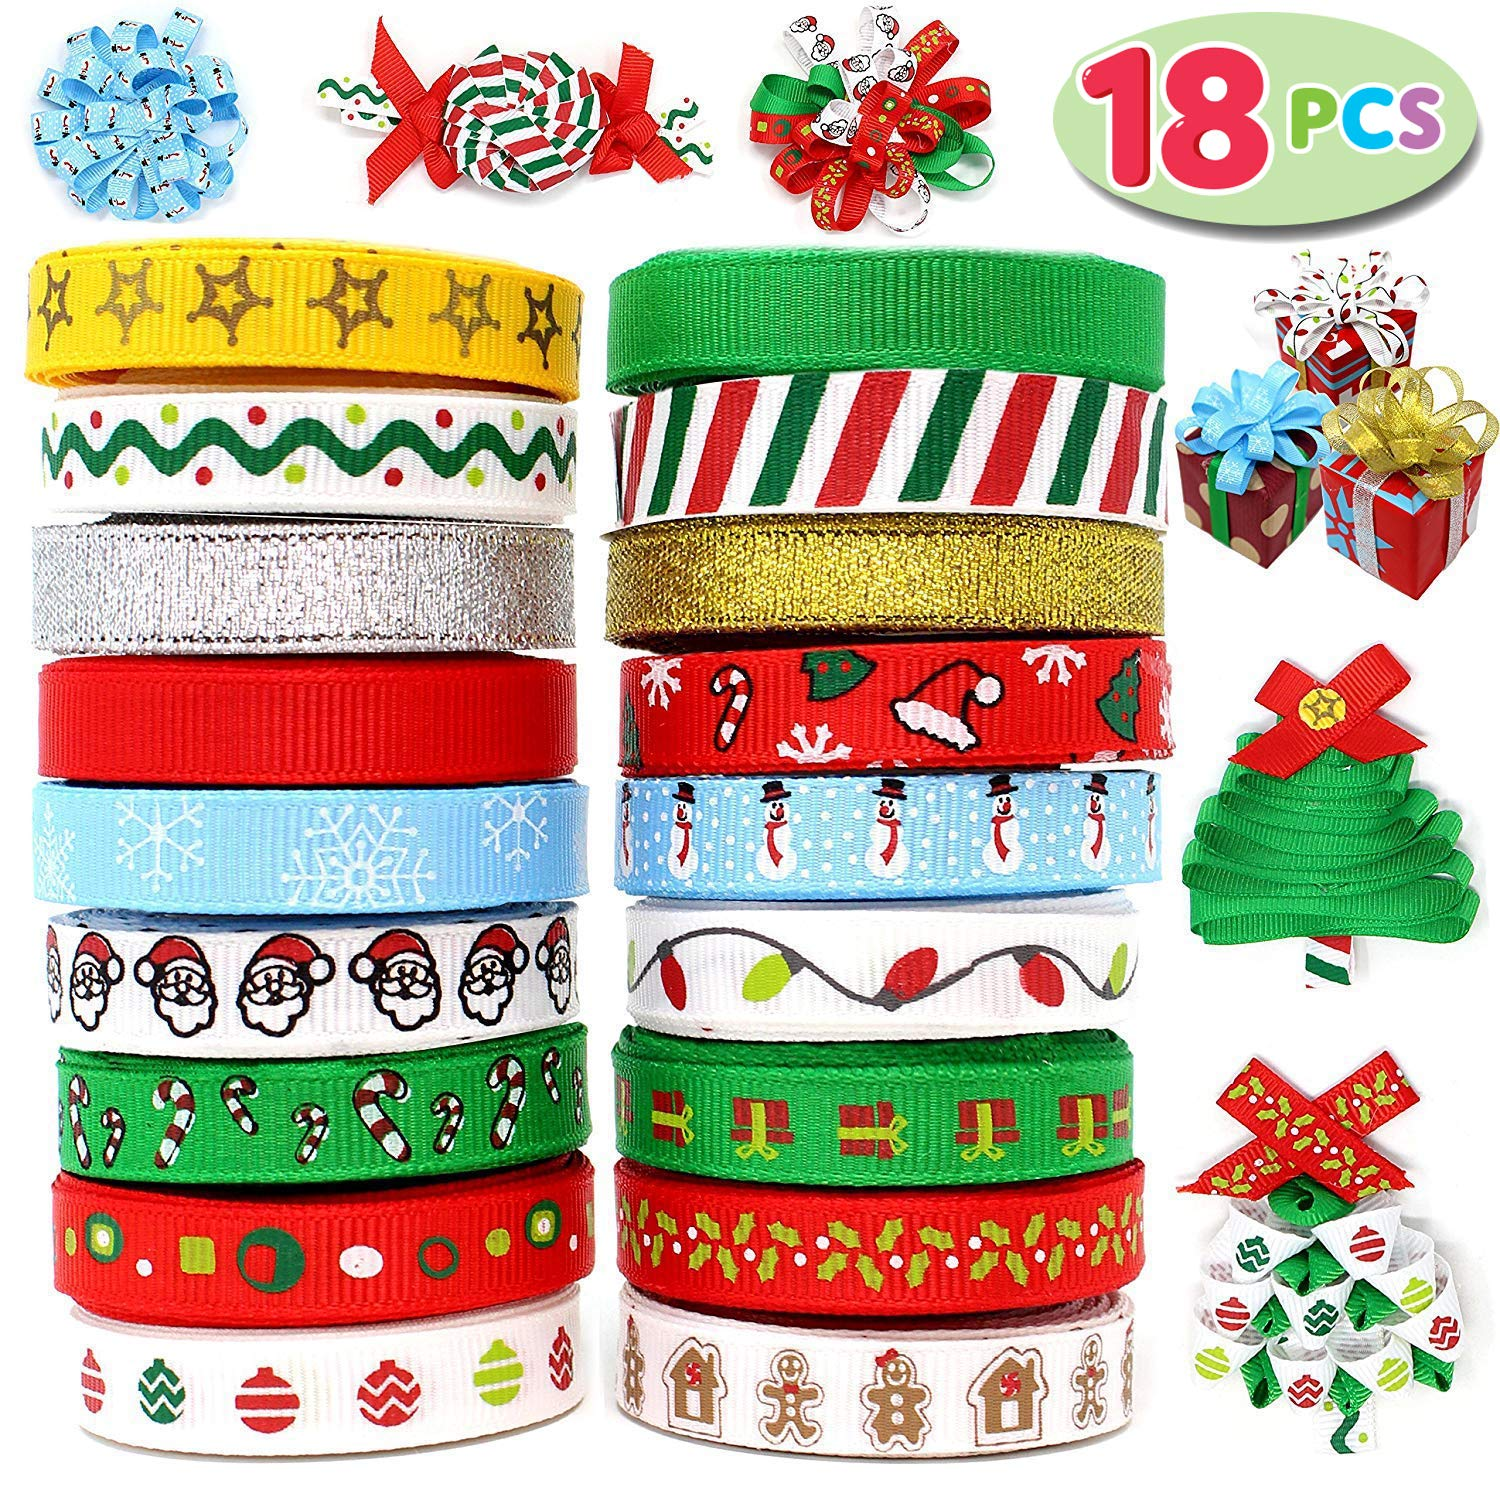 Joiedomi 18Pcs Christmas Ribbons; 90 Yard Grosgrain Satin Fabric Ribbons for Christmas Holiday Gift Box Wrapping, Hair Bow Clips, Gift Bows, Craft, Sewing, Wedding, Baby Shower and Wine Decoration Joyin Inc